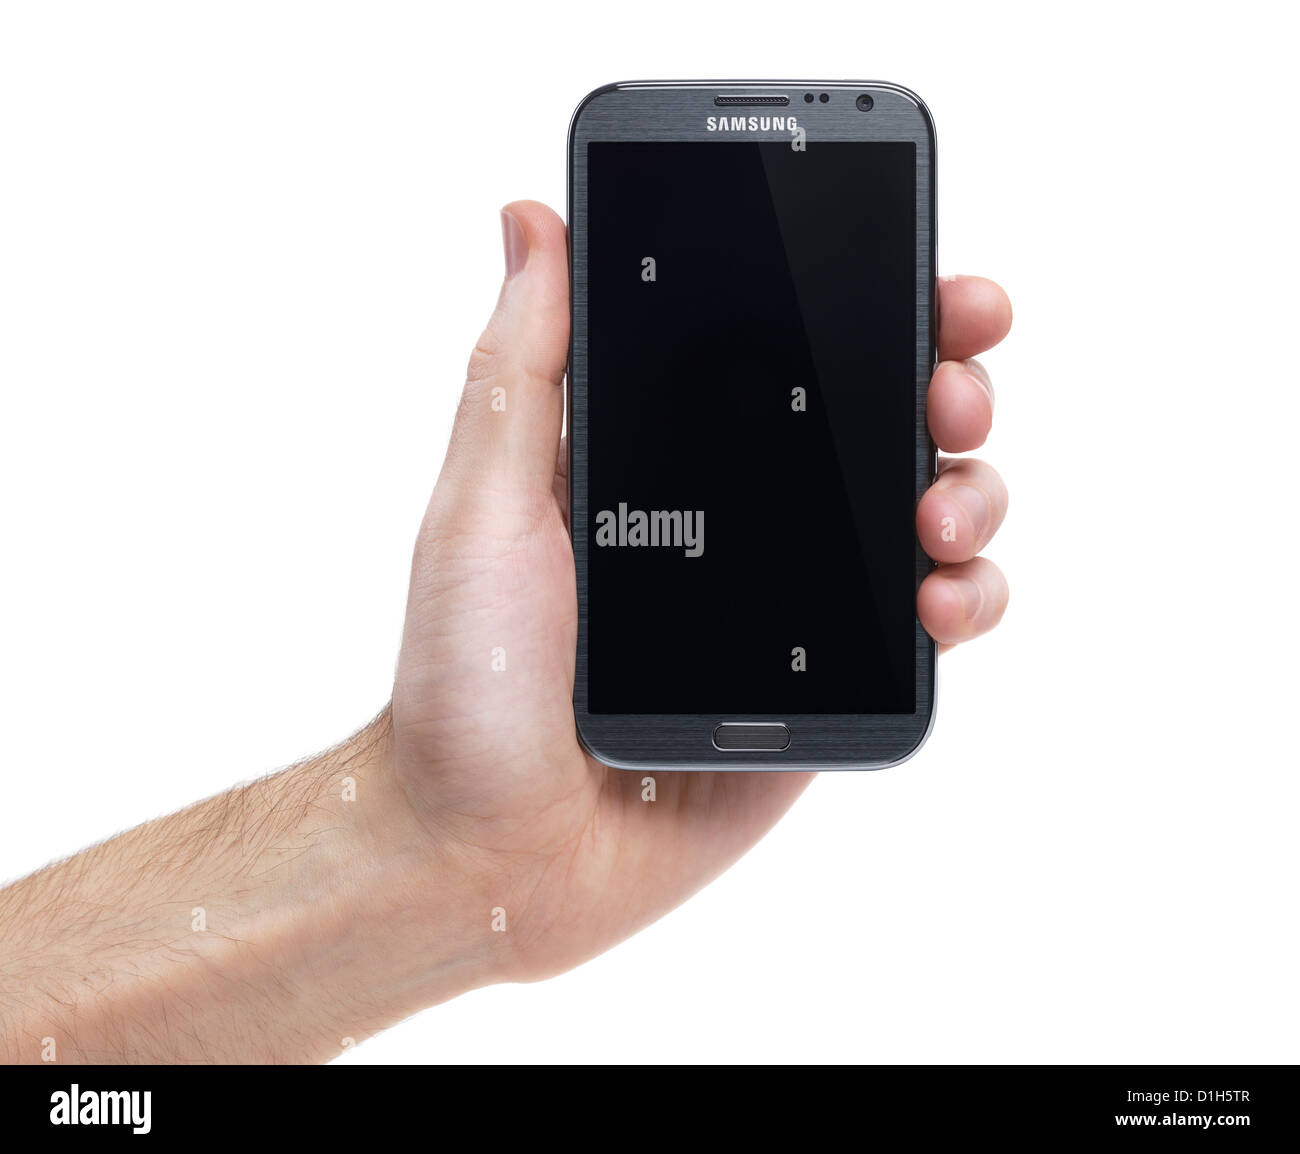 Second Hand Phones Stock Photos & Second Hand Phones Stock Images